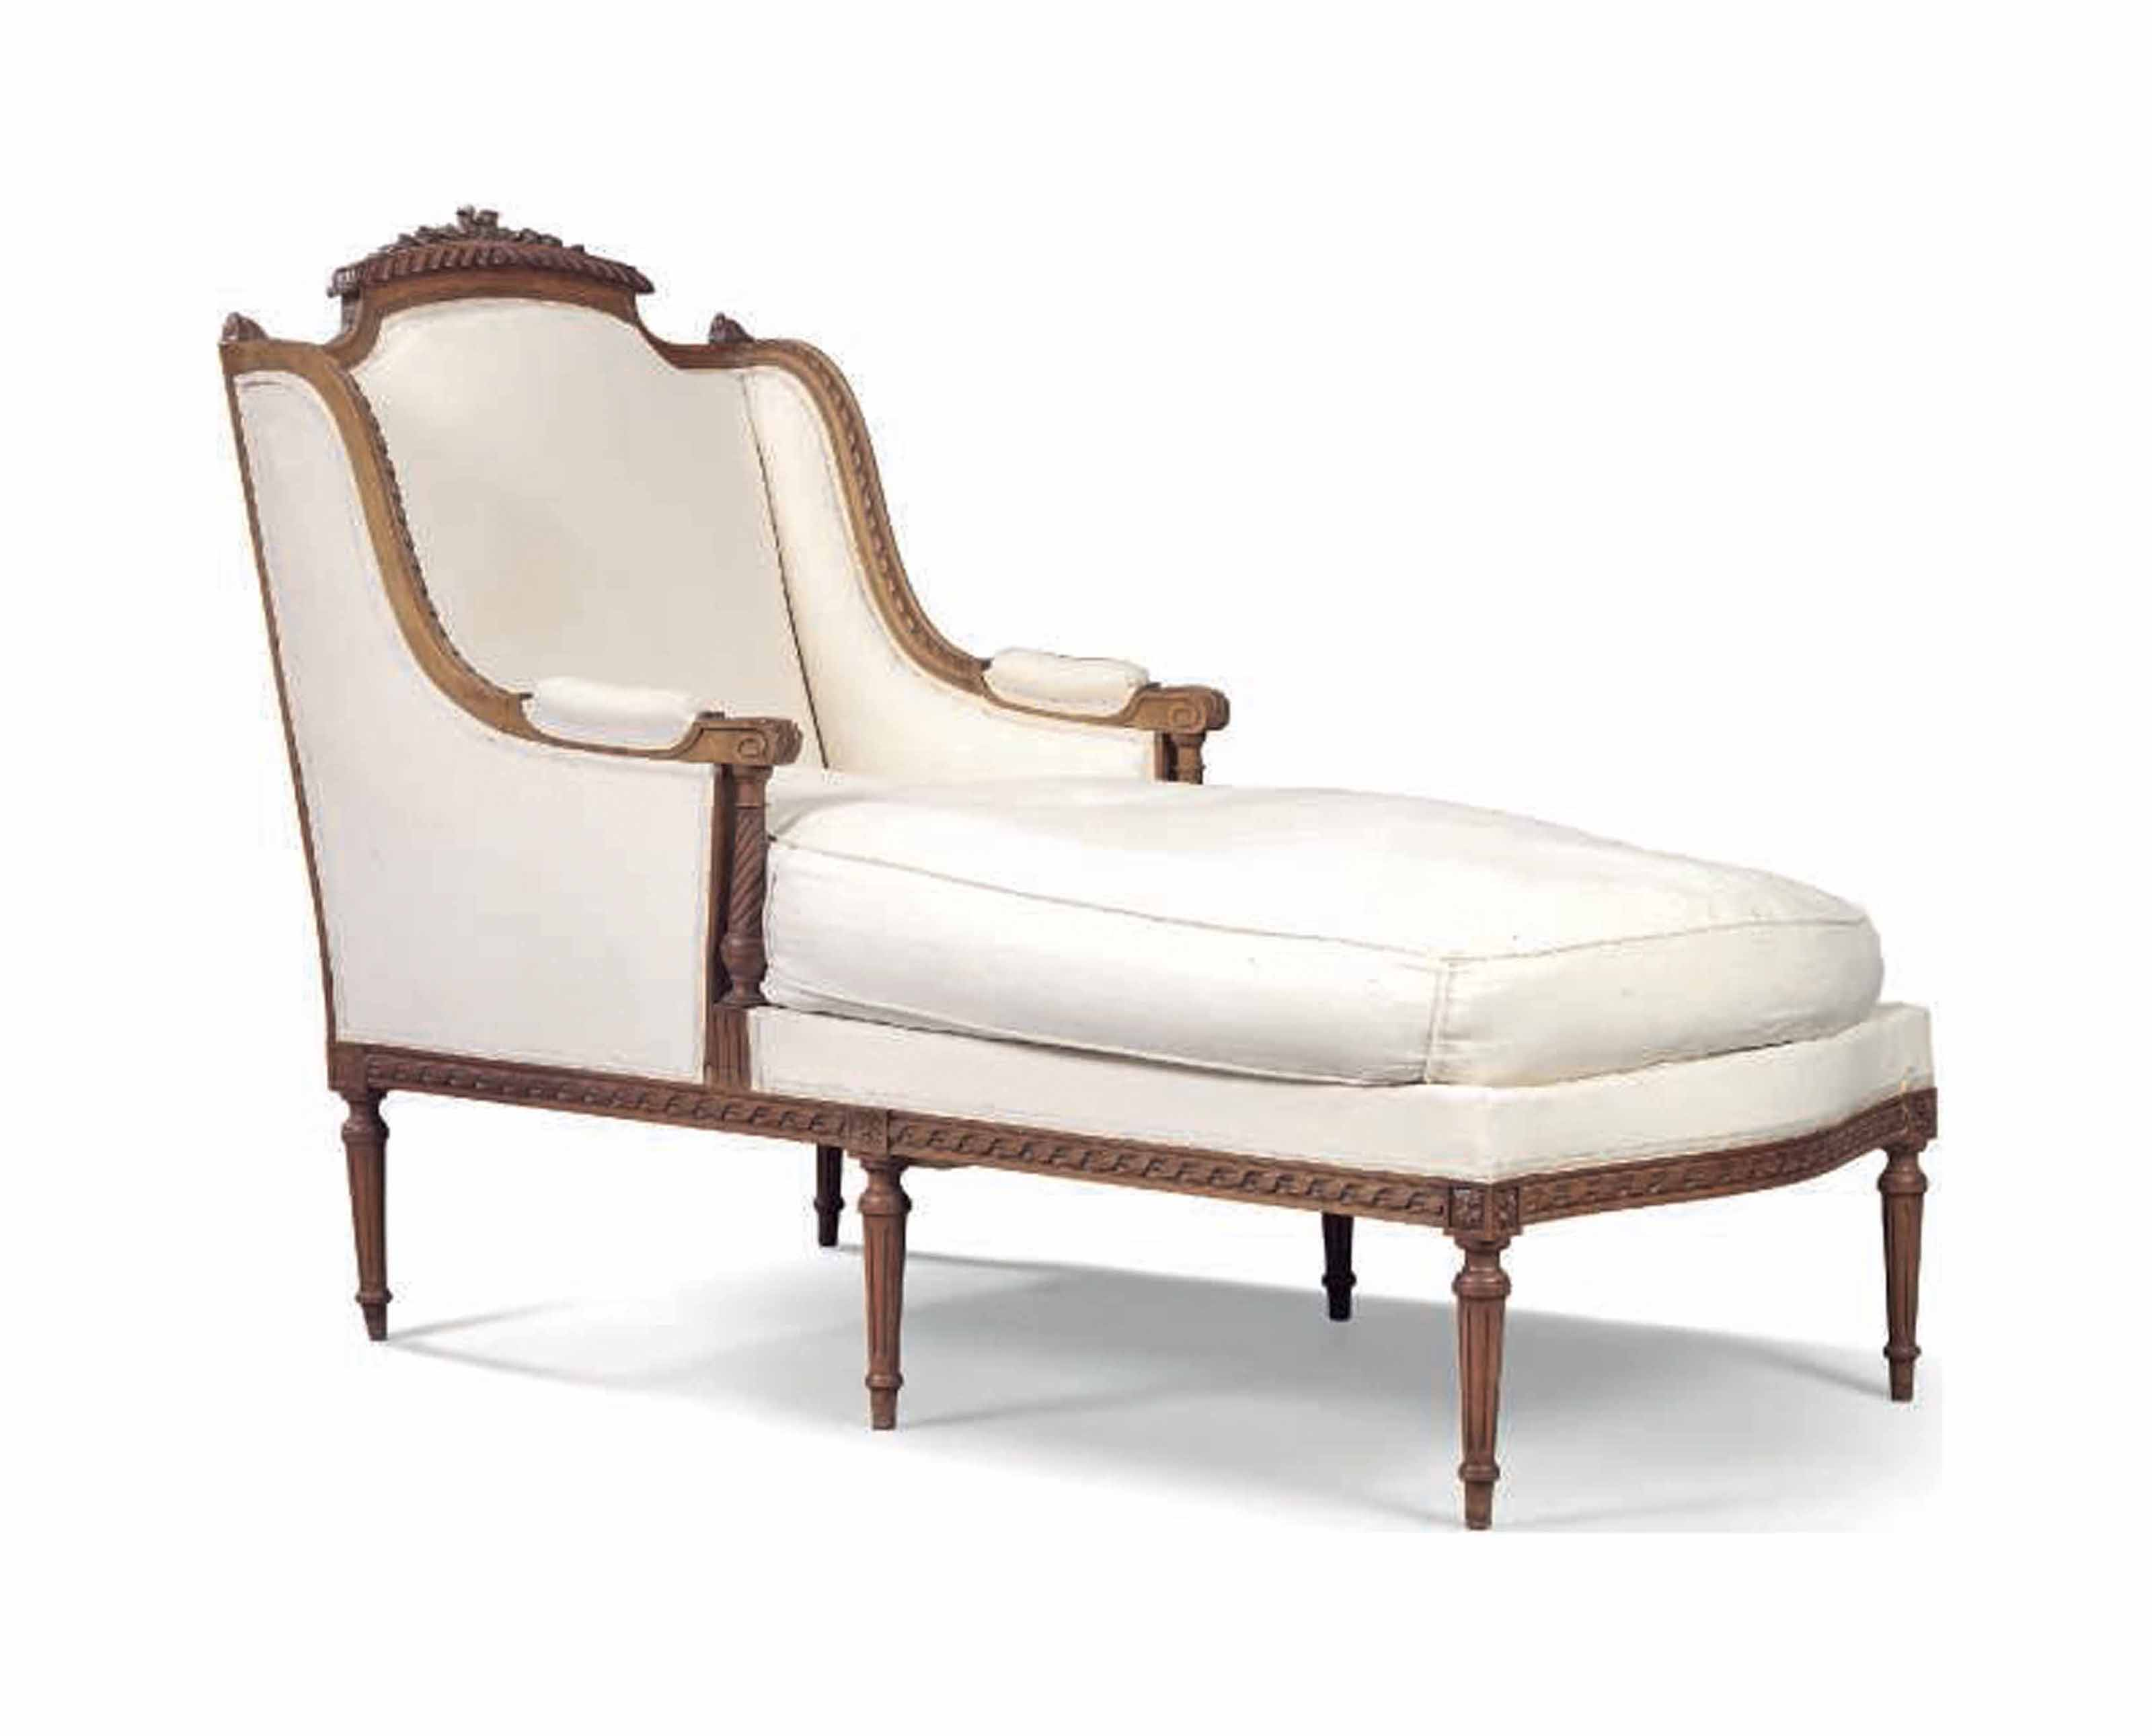 A FRENCH WALNUT CHAISE LONGUE